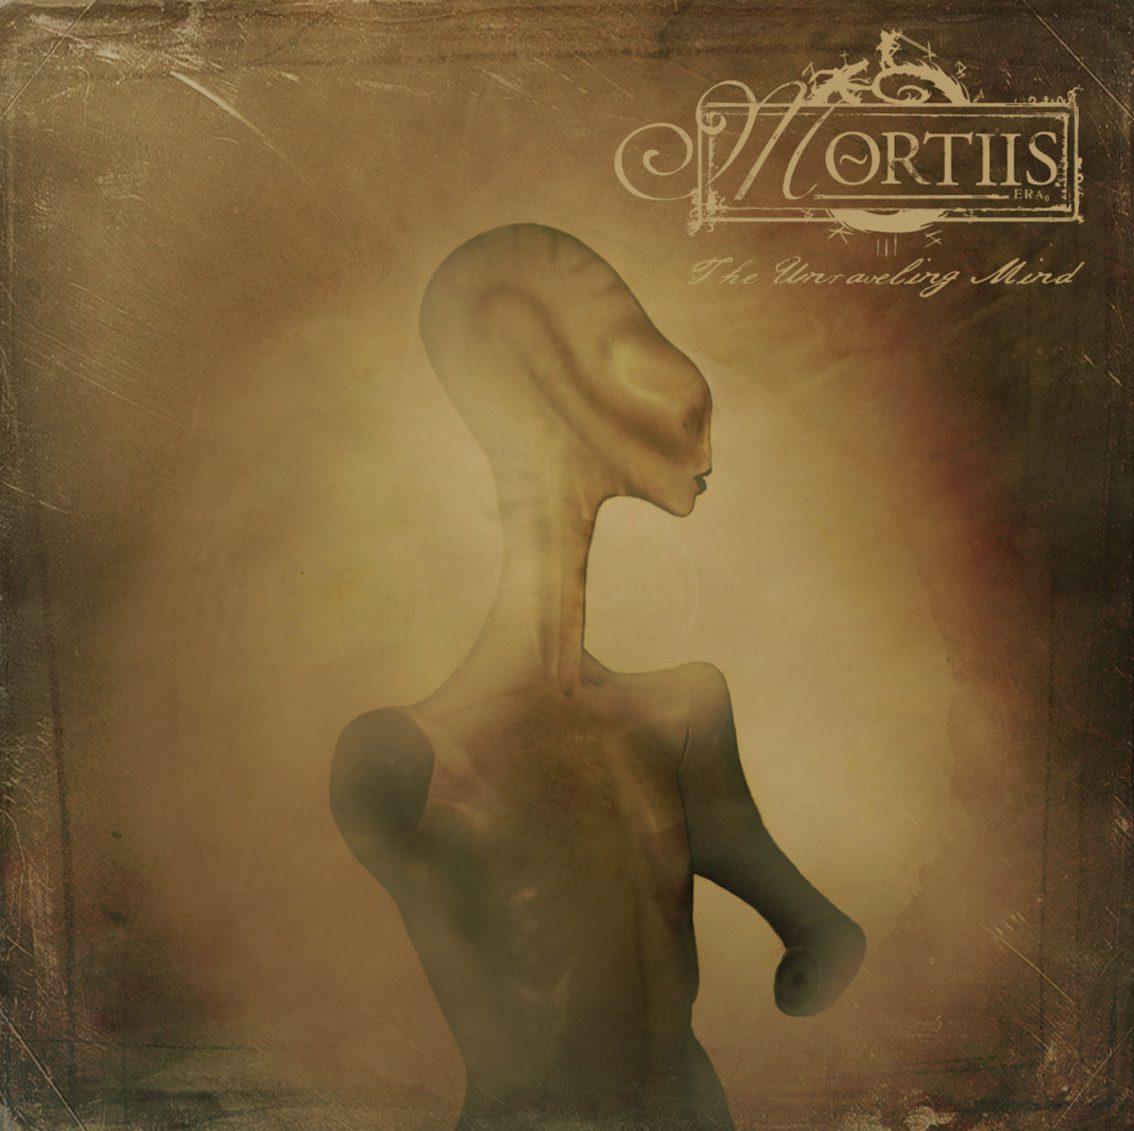 Mortiis' ambient-atmospheric album 'The Unraveling Mind' is finally available as a download 13 years after being recorded